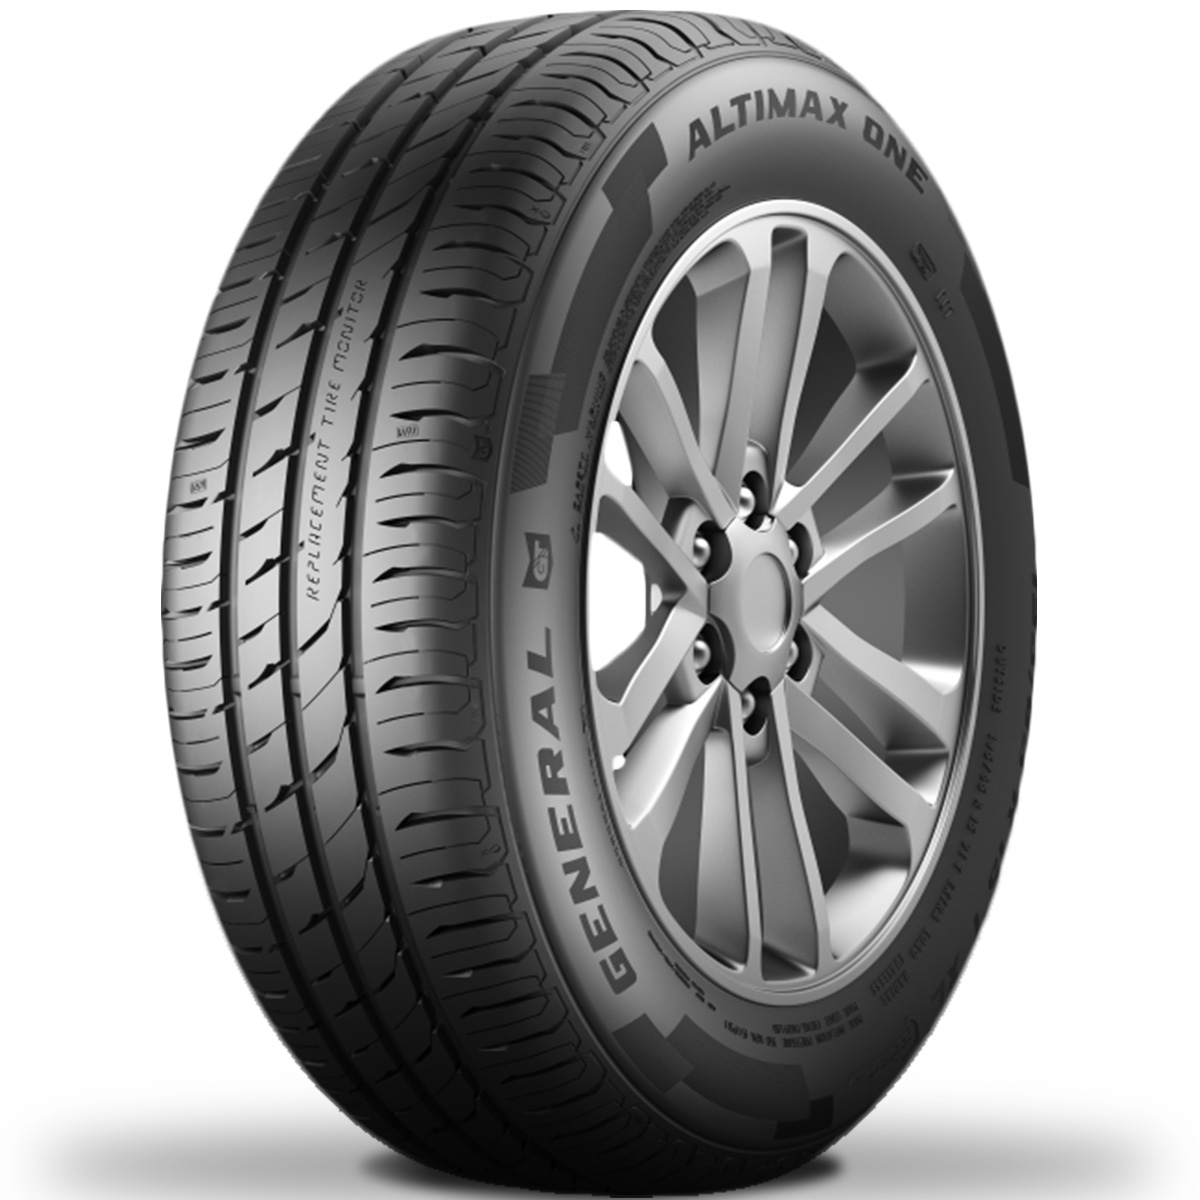 Pneu Aro 13 175/70R13 82T Altimax One By Continent